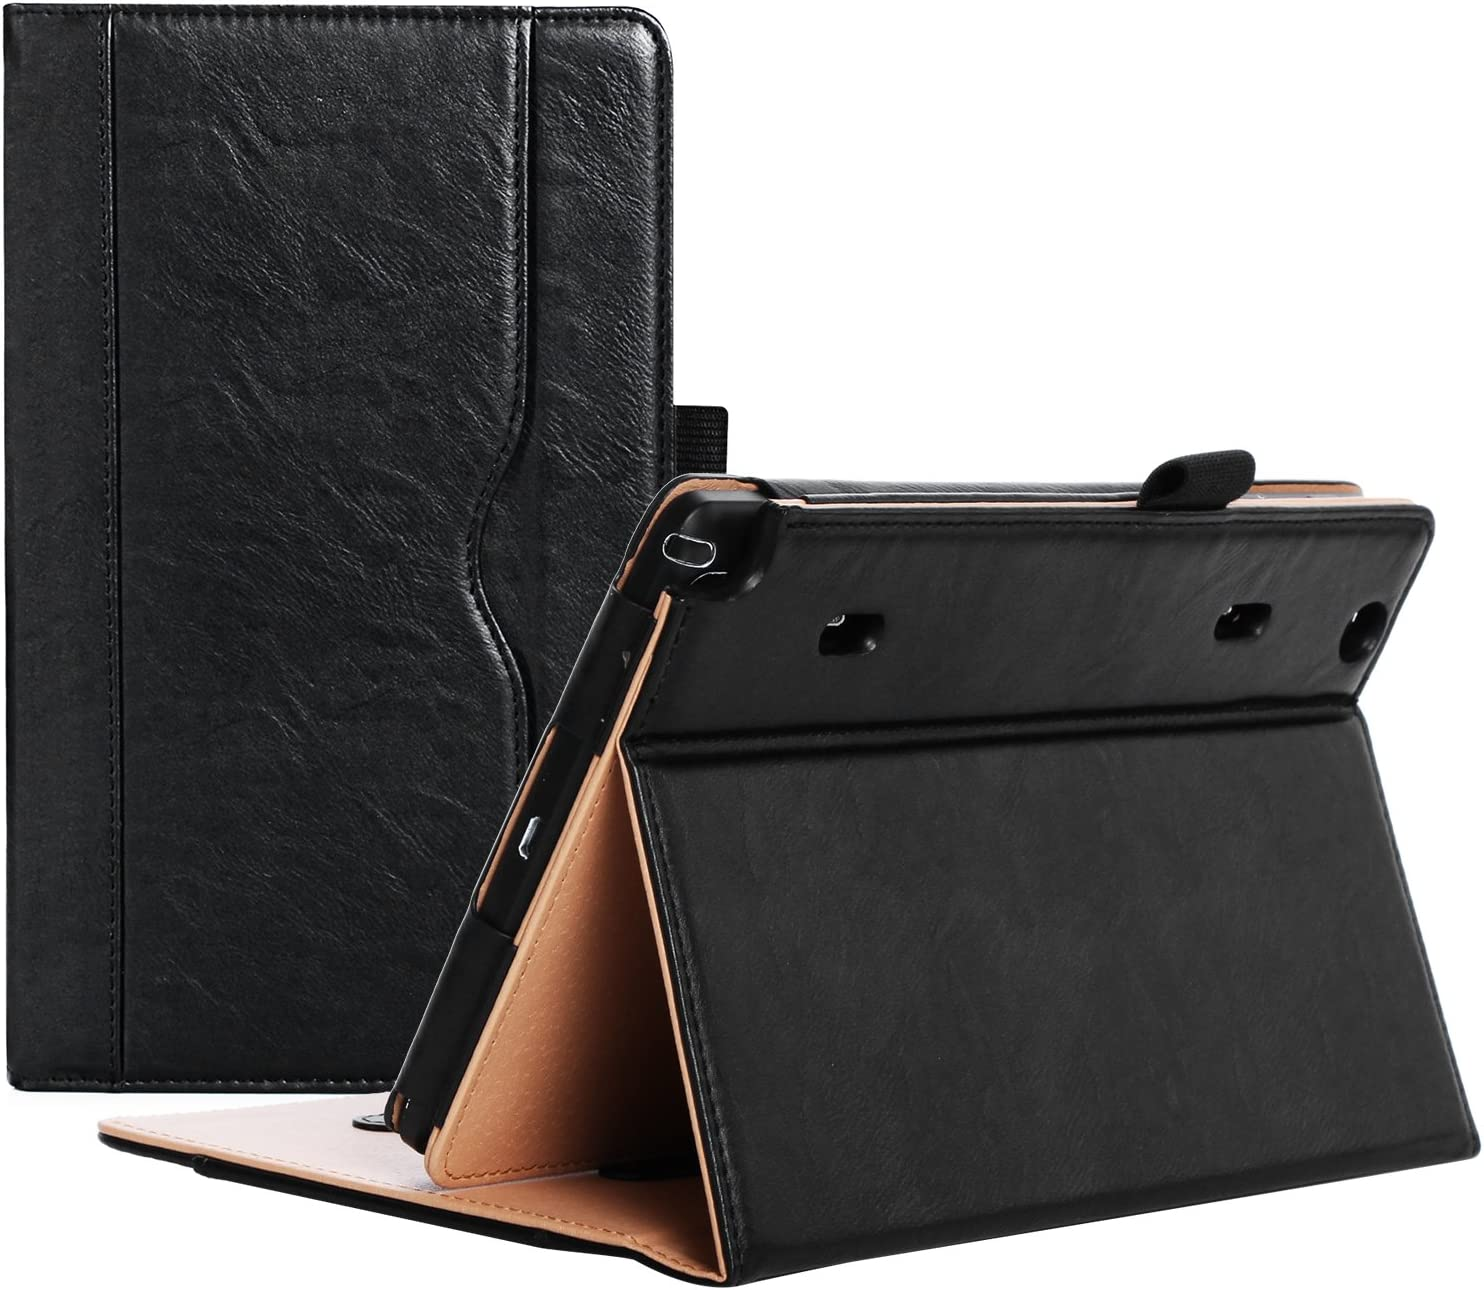 ProCase Verizon LG G Pad X8.3 Case (Verizon 4G LTE LG GPad VK815) - Standing Cover Folio Case for for LG G Pad X8.3 (LG-VK815), with Multiple Viewing Angles, Document Card Pocket (Black)